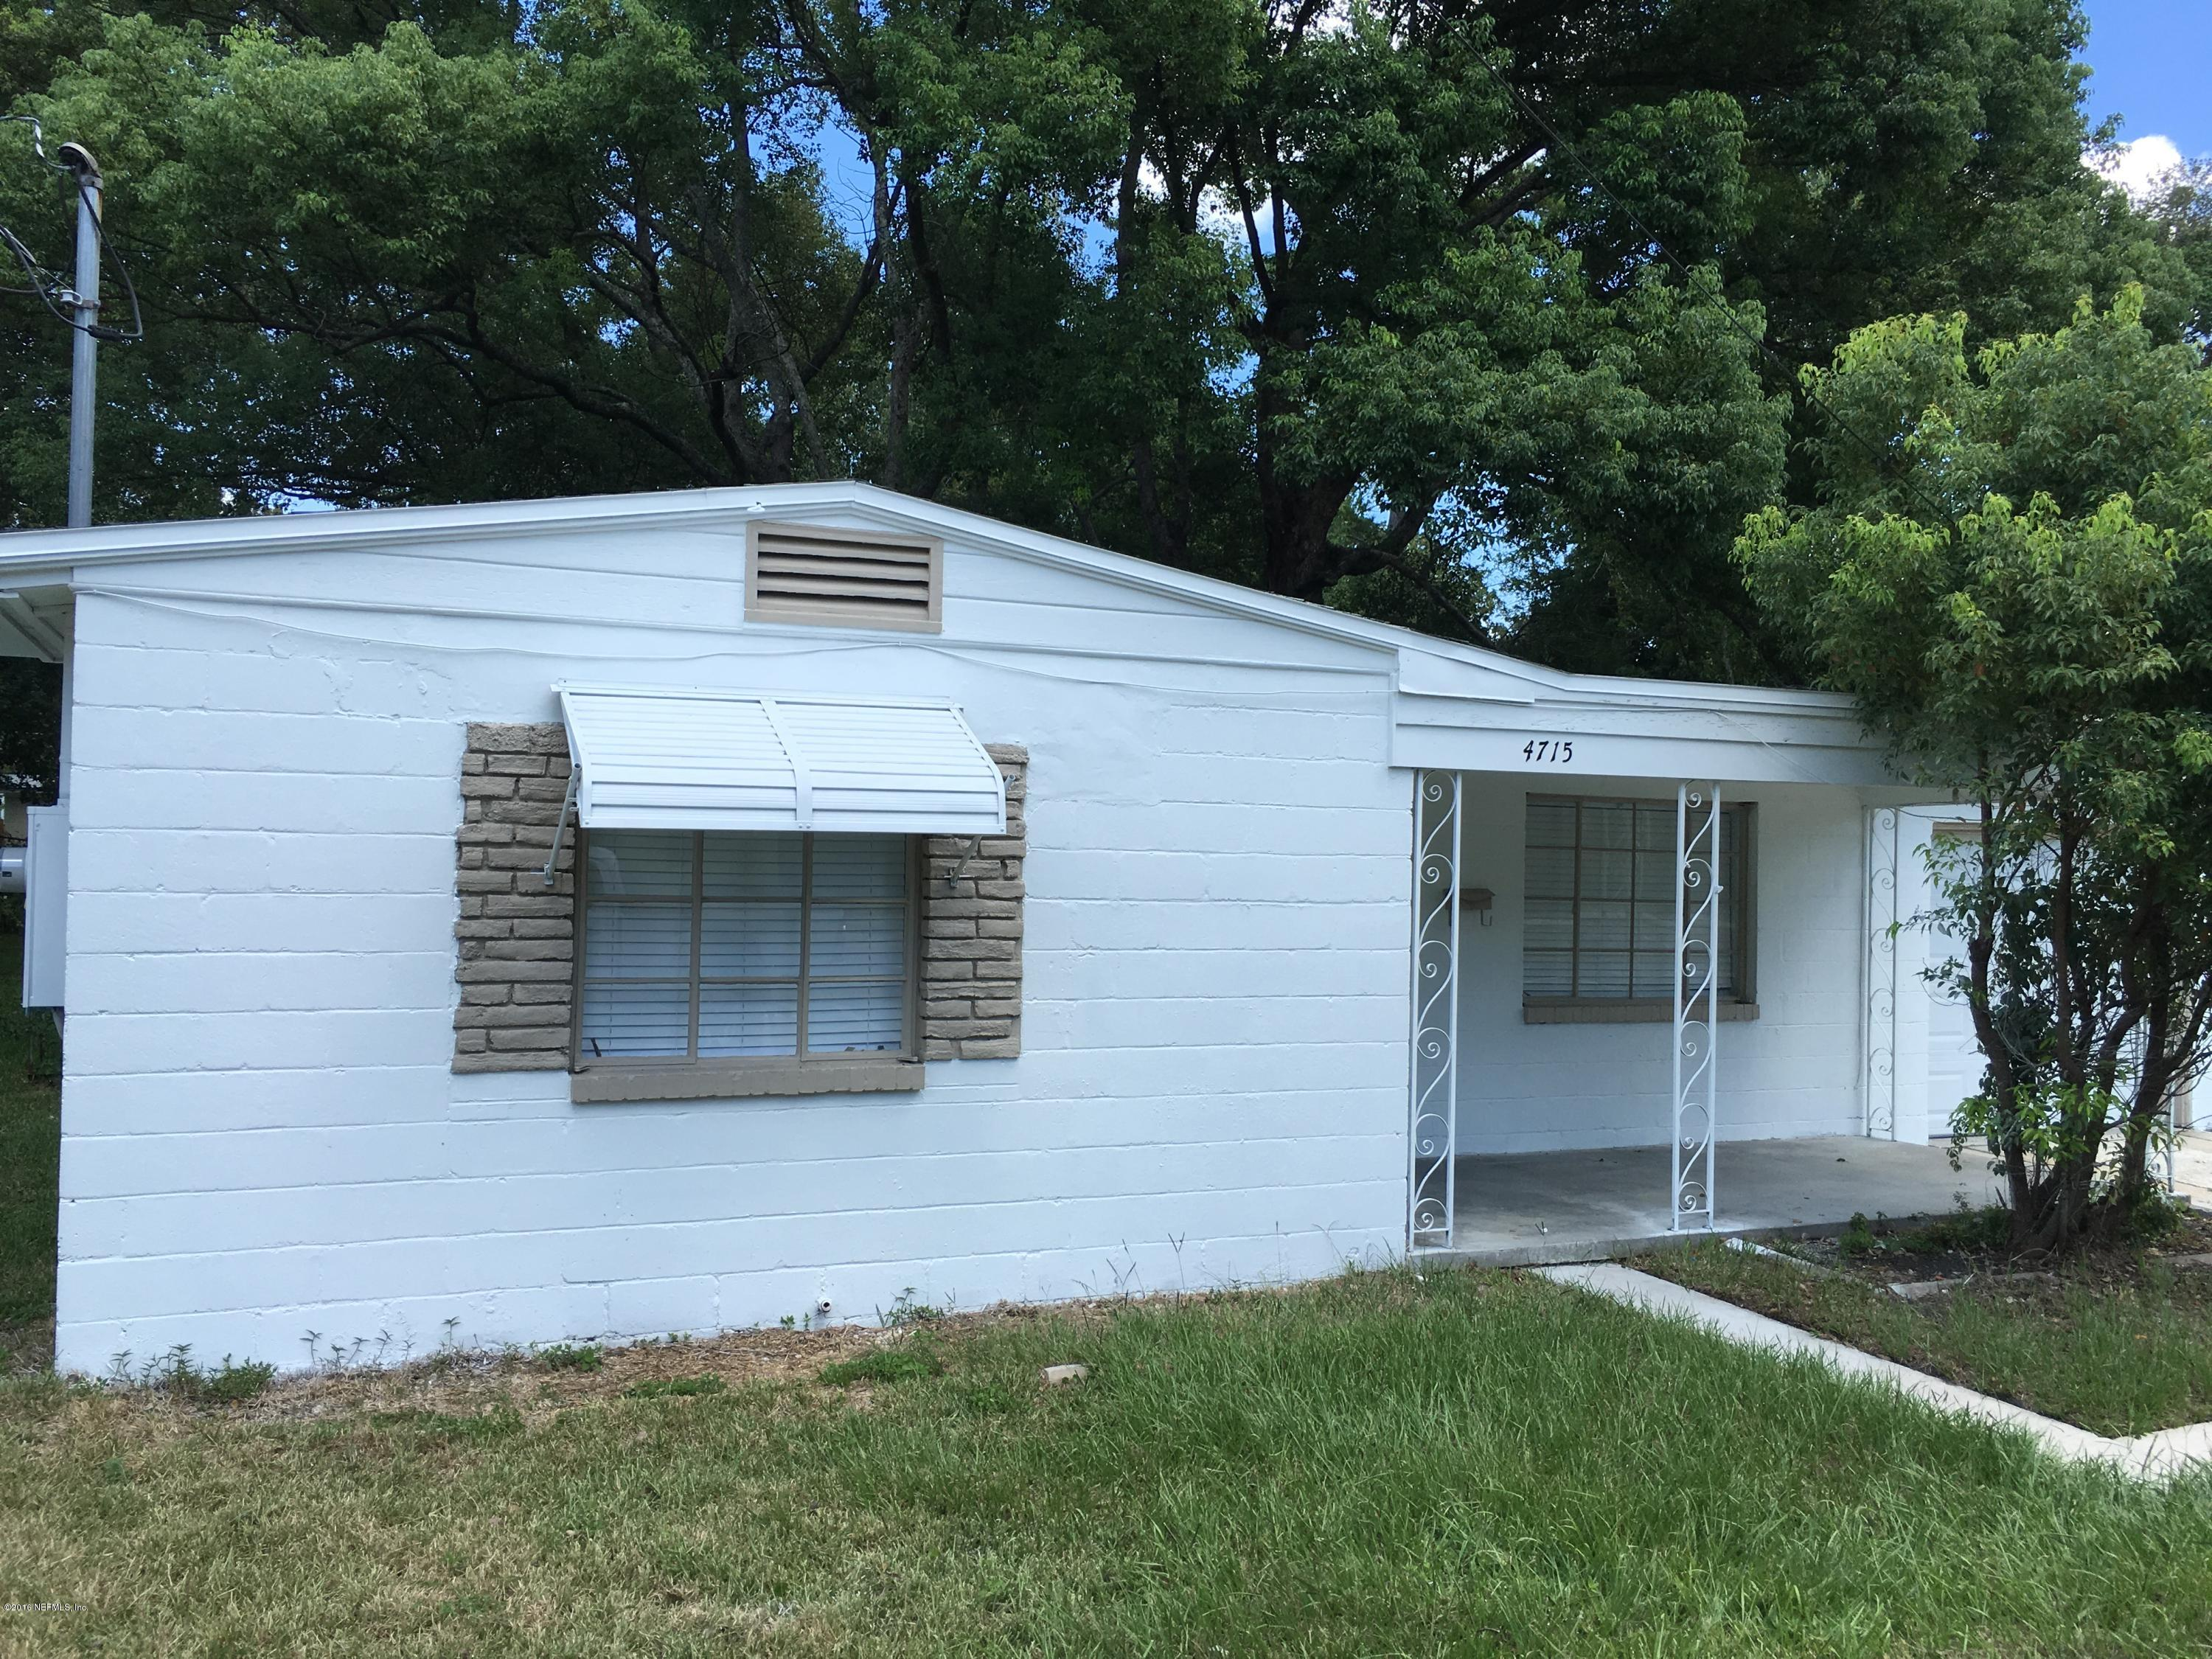 4715 TIMUQUANA, JACKSONVILLE, FLORIDA 32210, 2 Bedrooms Bedrooms, ,1 BathroomBathrooms,Residential - single family,For sale,TIMUQUANA,844318